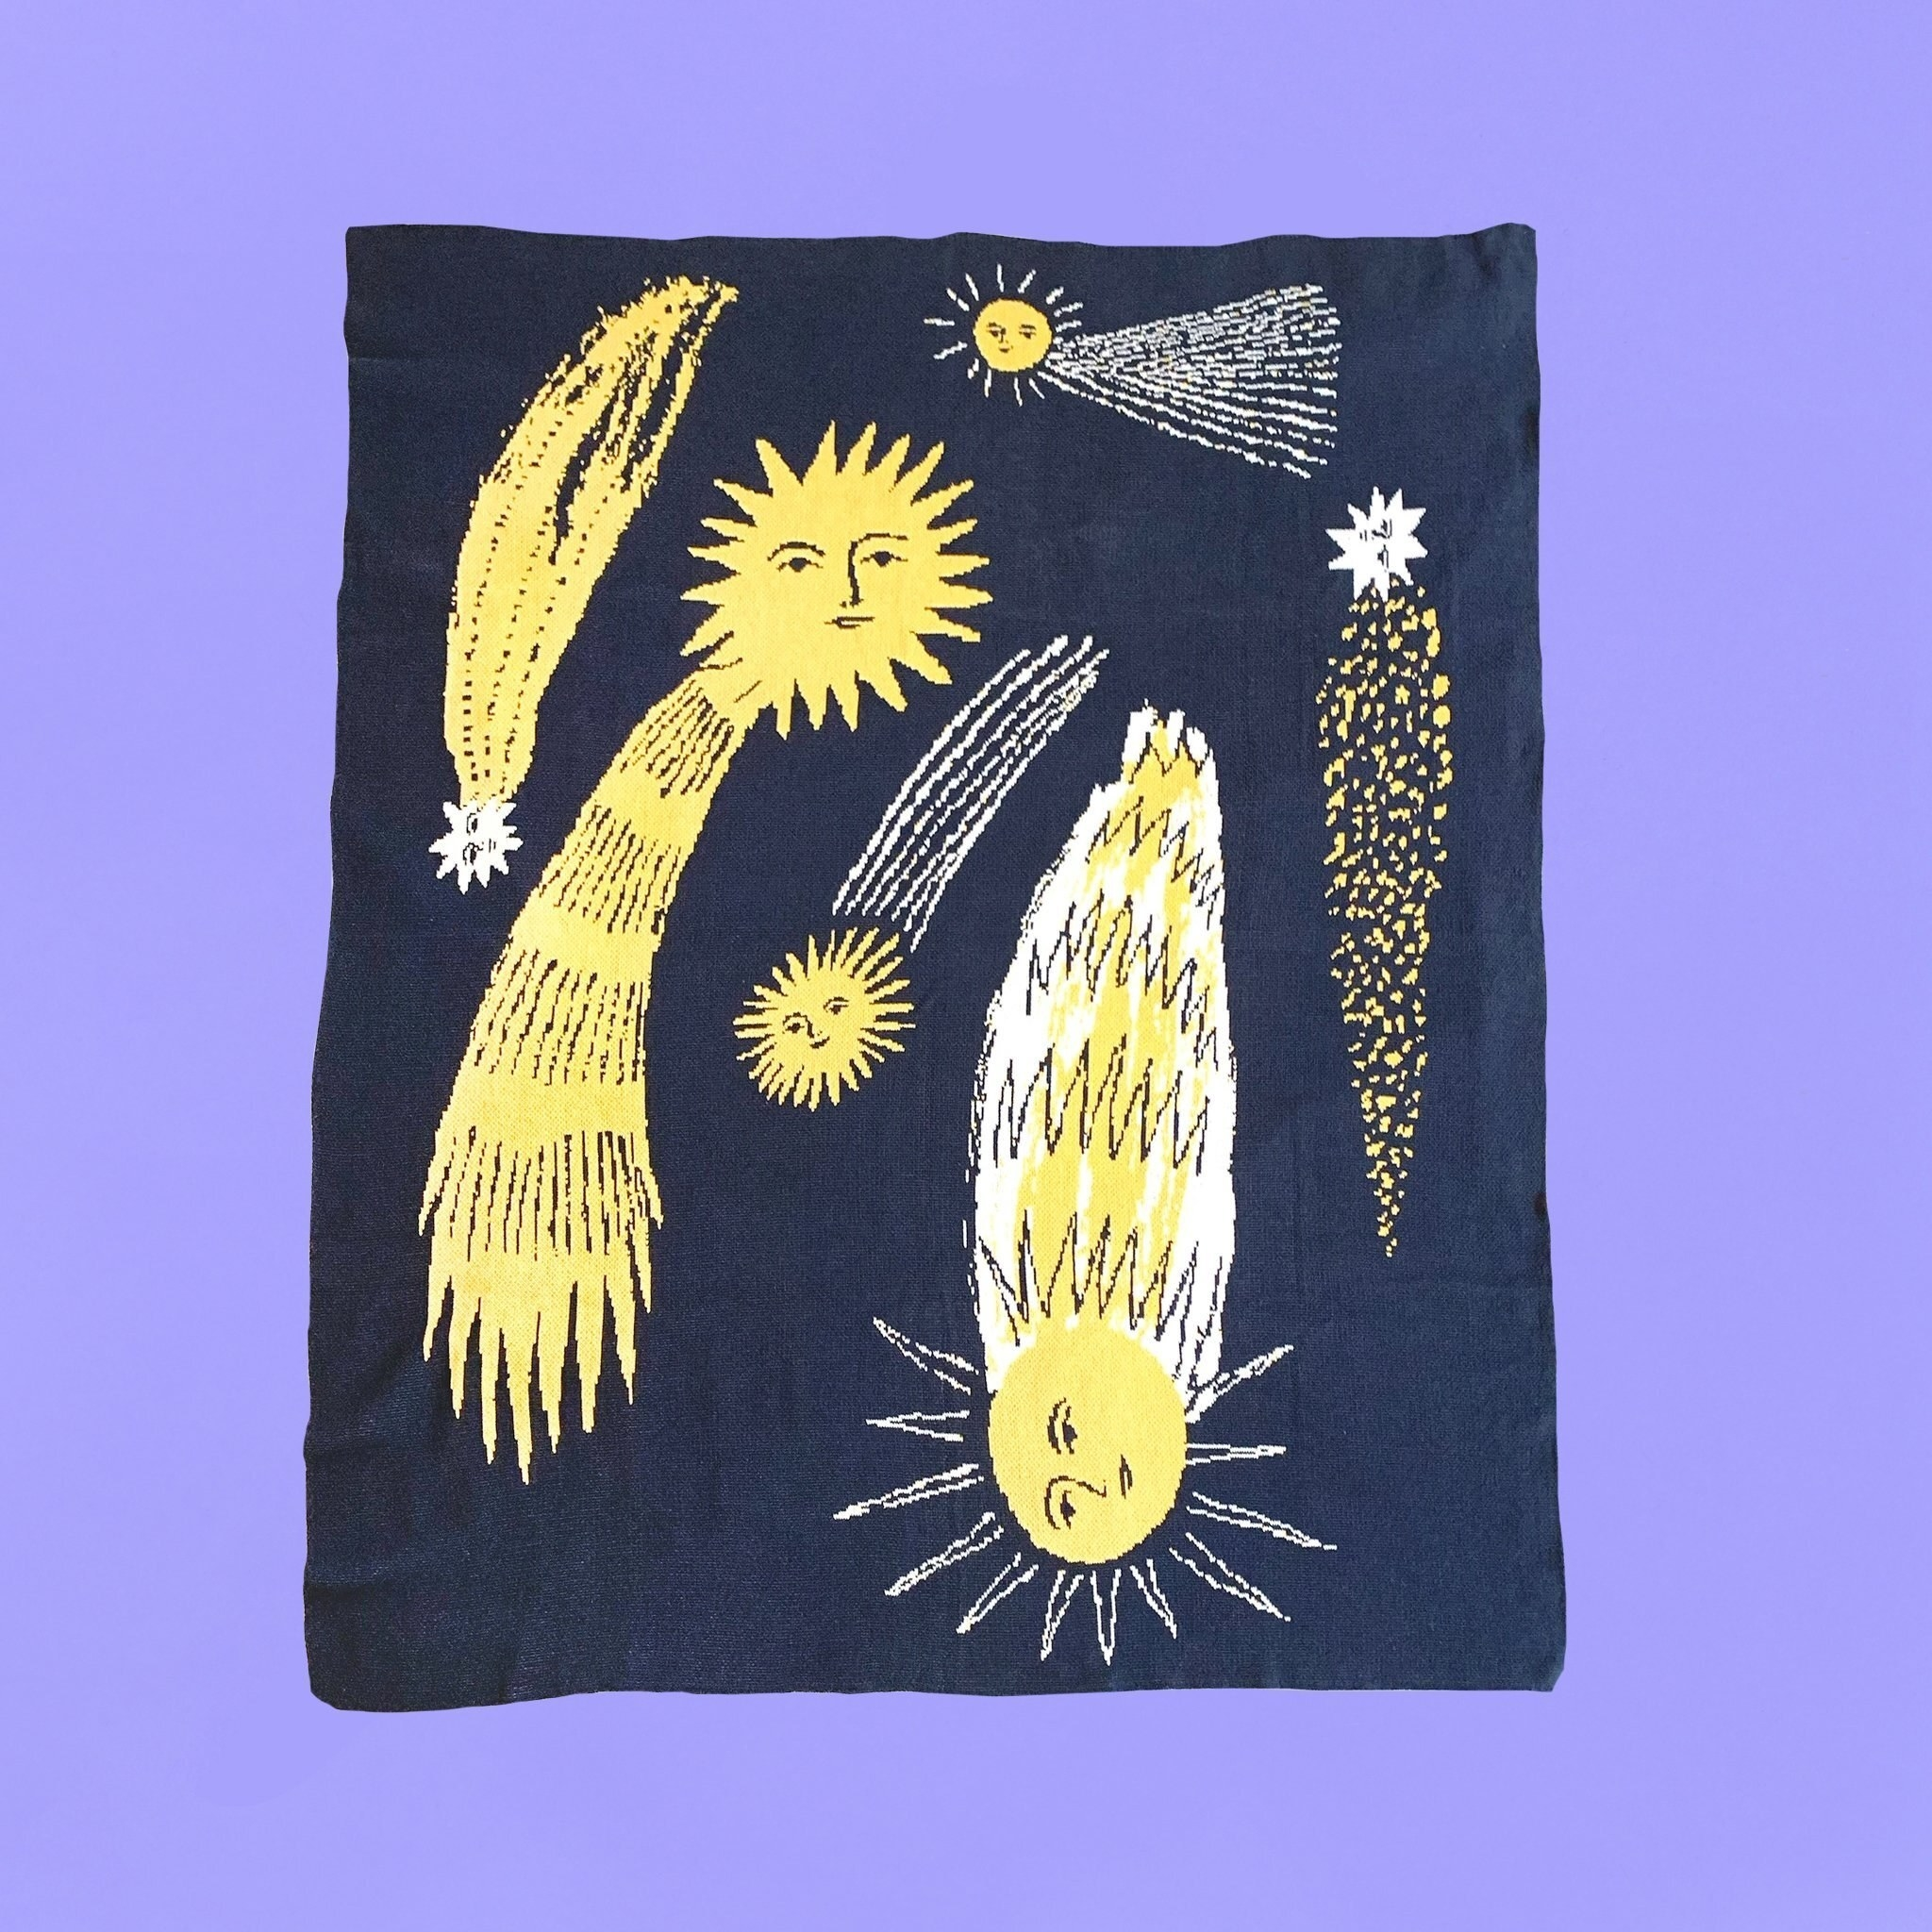 A throw blanket in dark blue with yellow and white illustrated comets, each with a face, flying through the sky